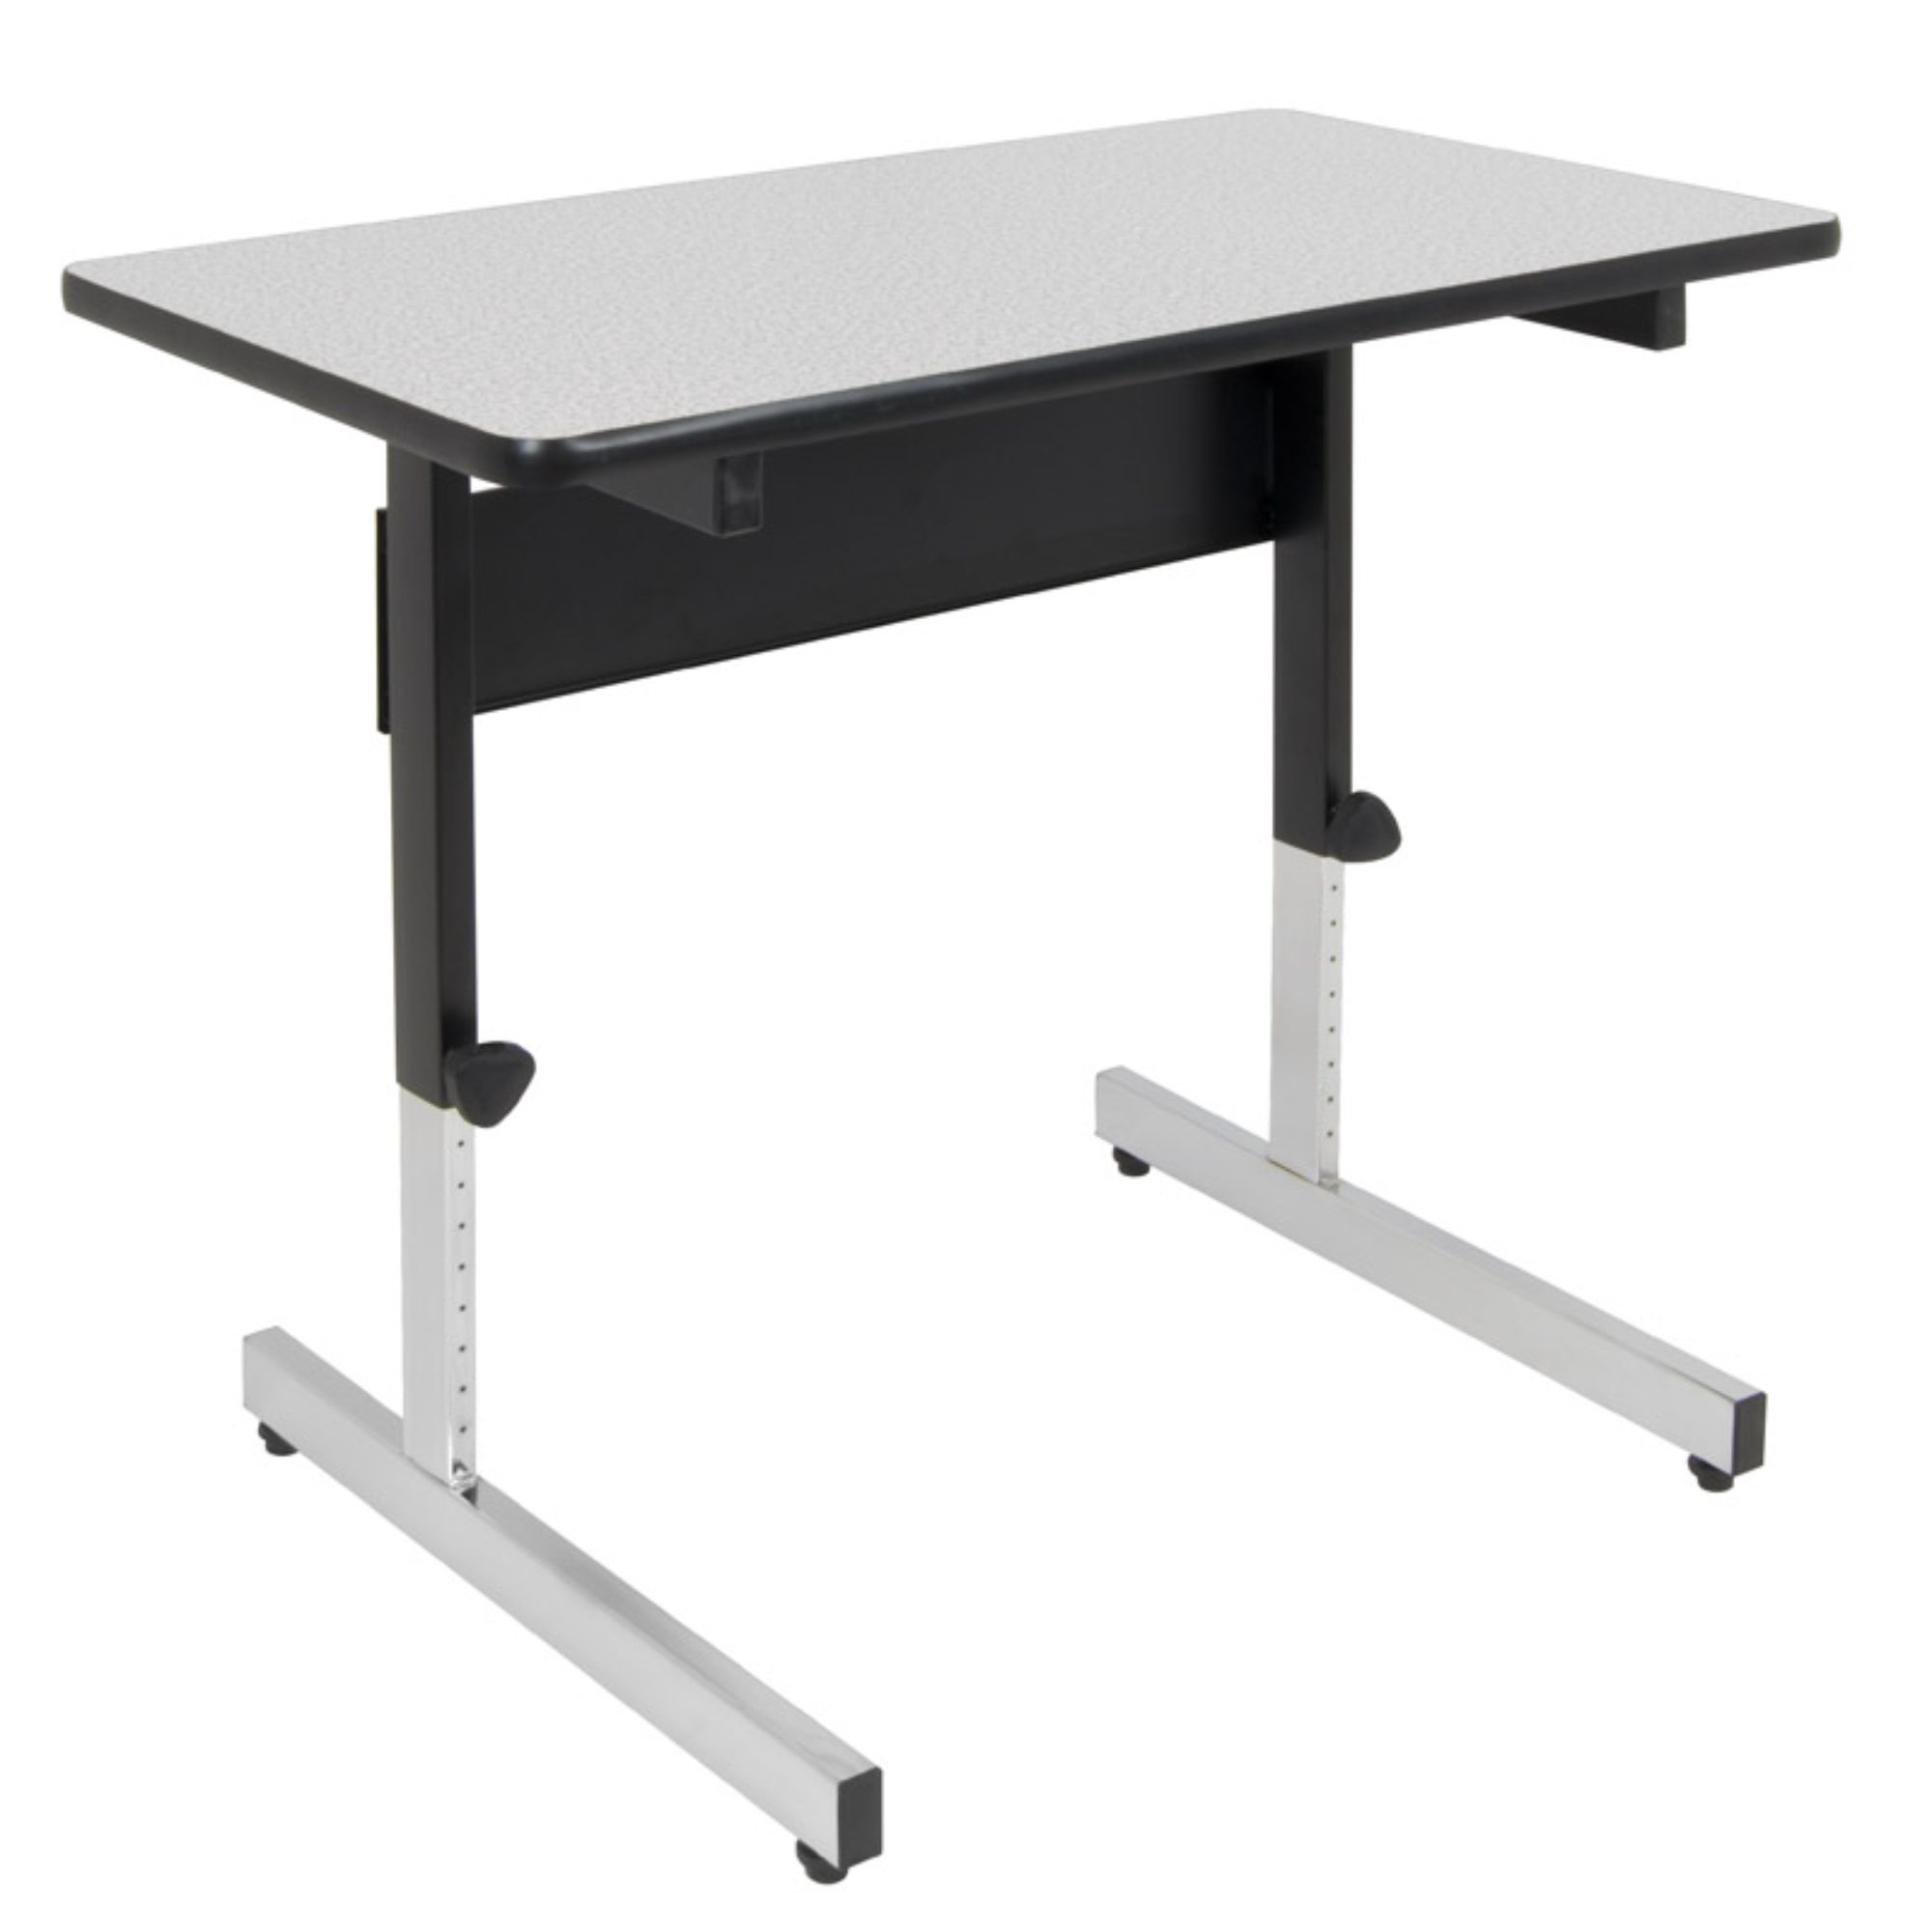 Offex Adjustable Height All Purpose Adapta Table- Black/Spatter Gray